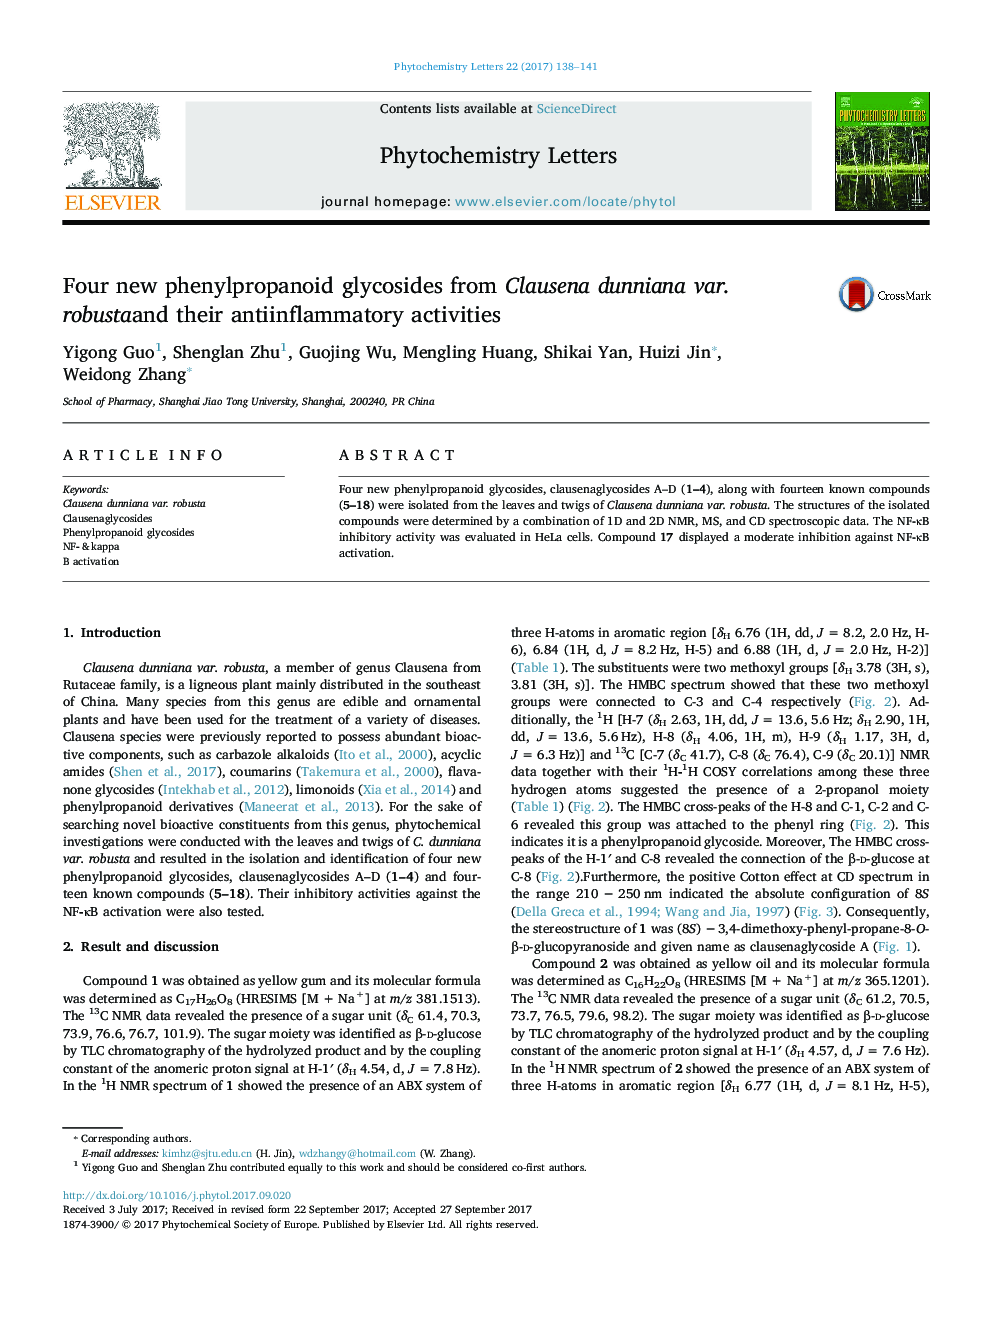 Four new phenylpropanoid glycosides from Clausena dunniana var. robustaand their antiinflammatory activities